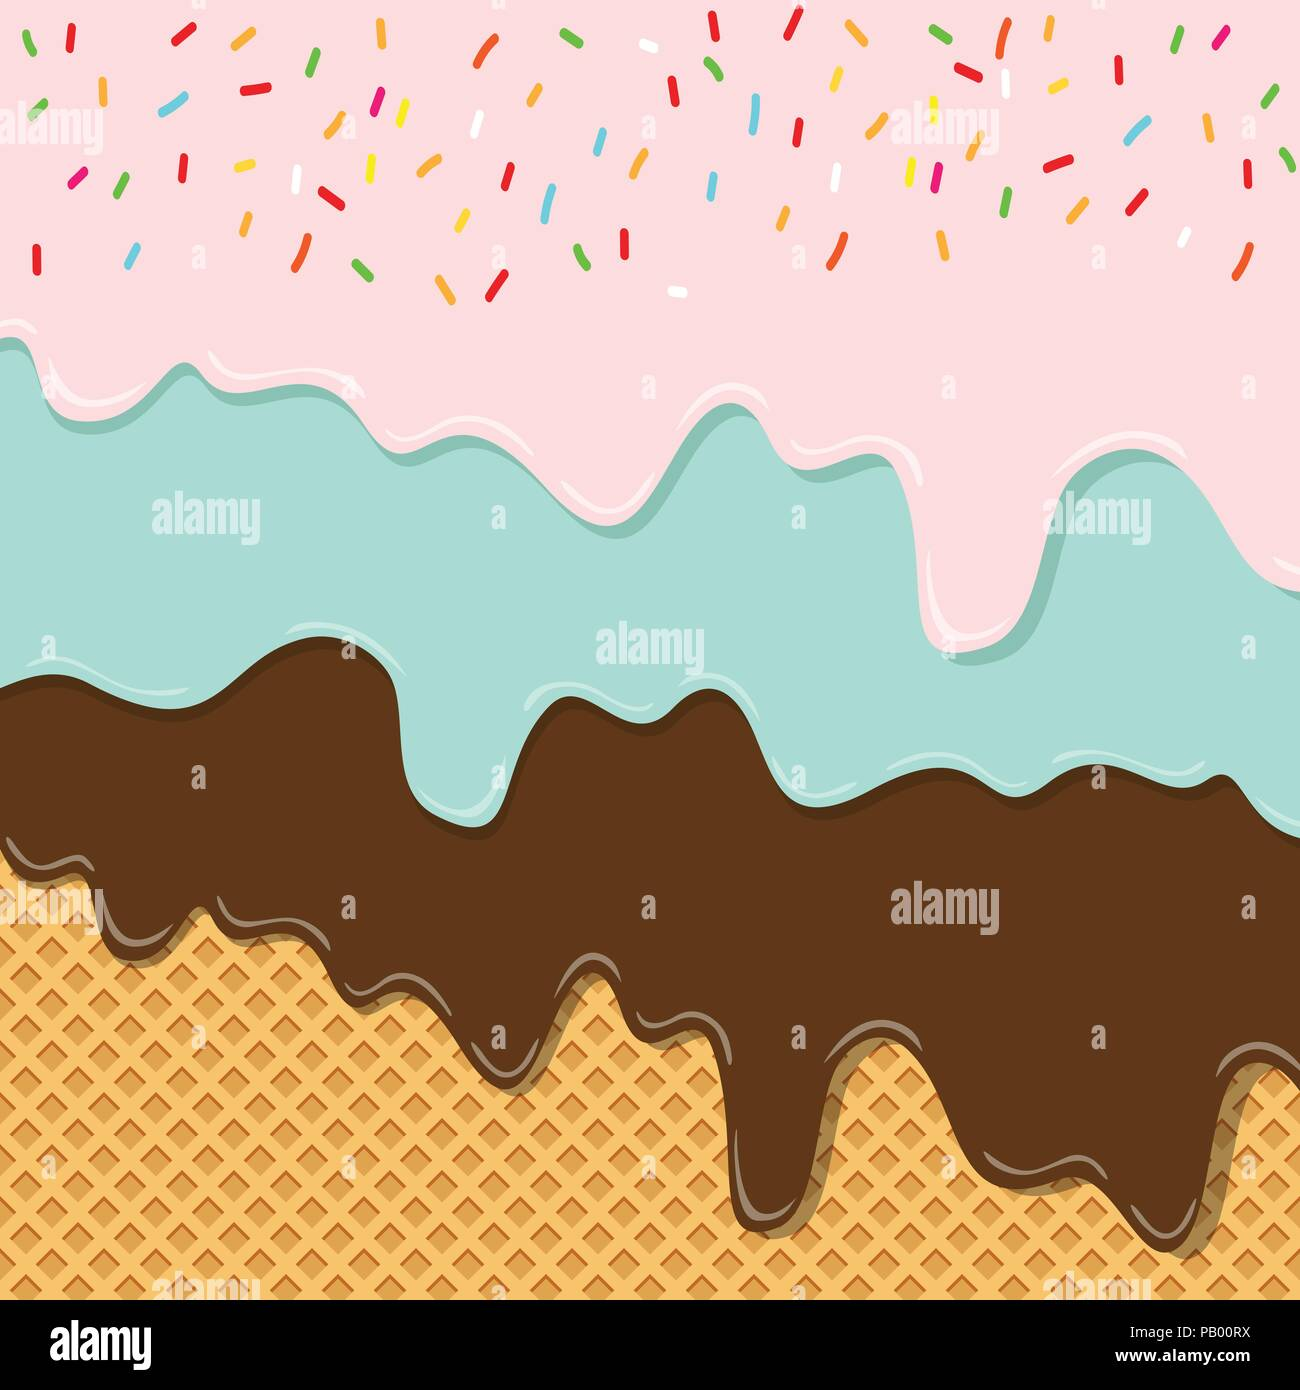 Ice Cream Wide Wallpapers Free: Sweet Flavor Ice Cream Texture Layer Melted On Wafer